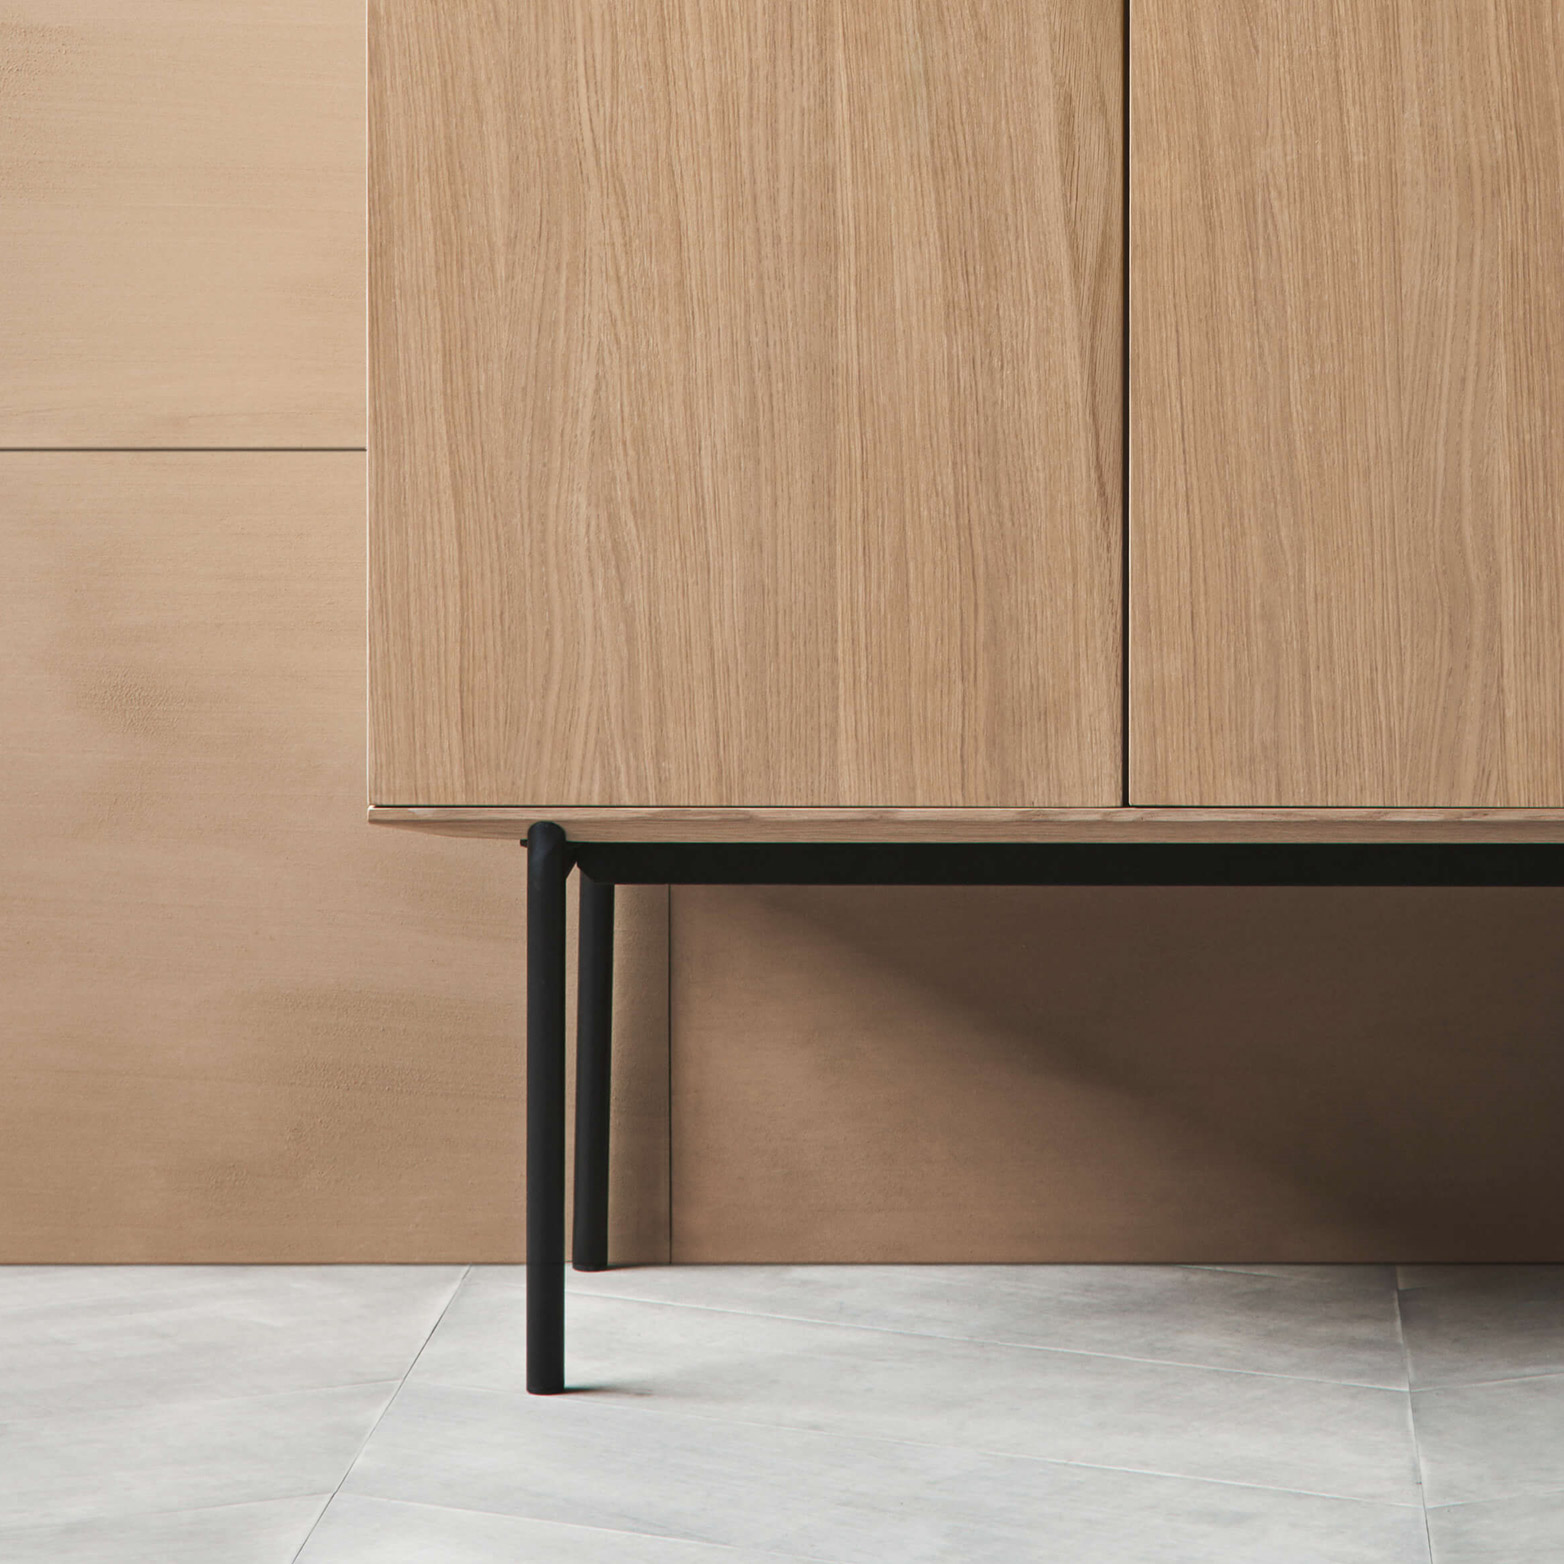 Fredericia silent highboard wooden cabinet metal leg detail